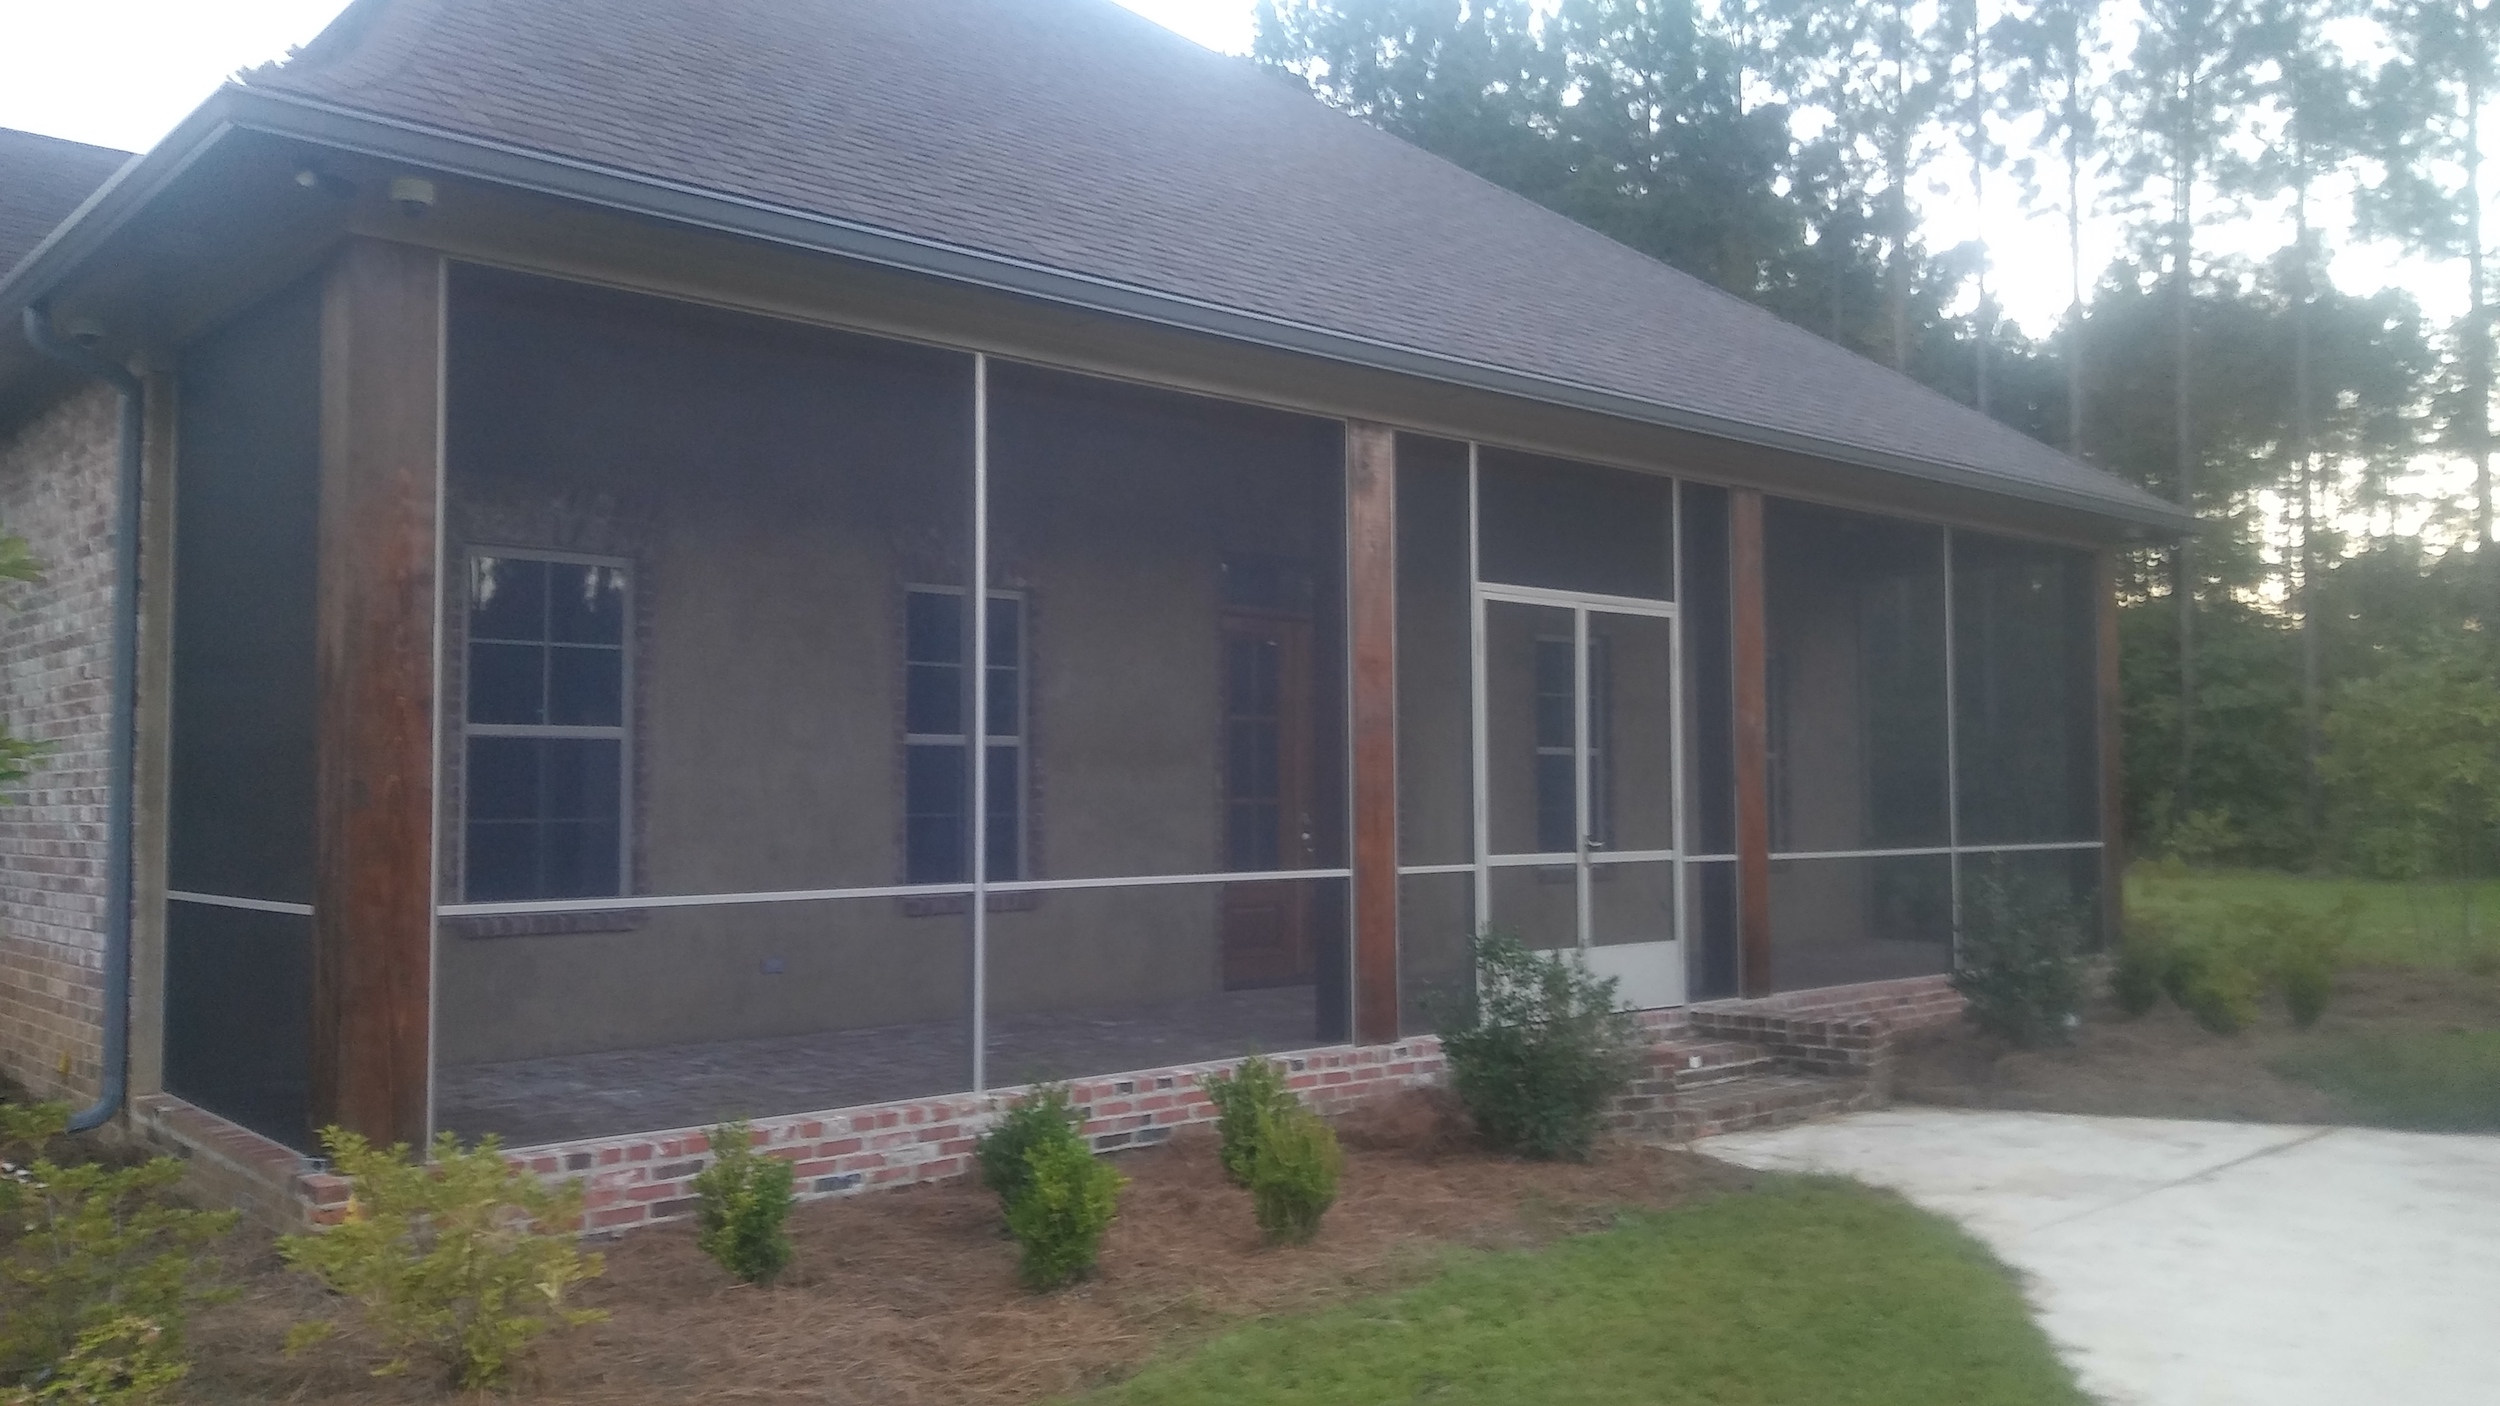 Screen porch added to the front of a house to create a bug-free living space outdoor.